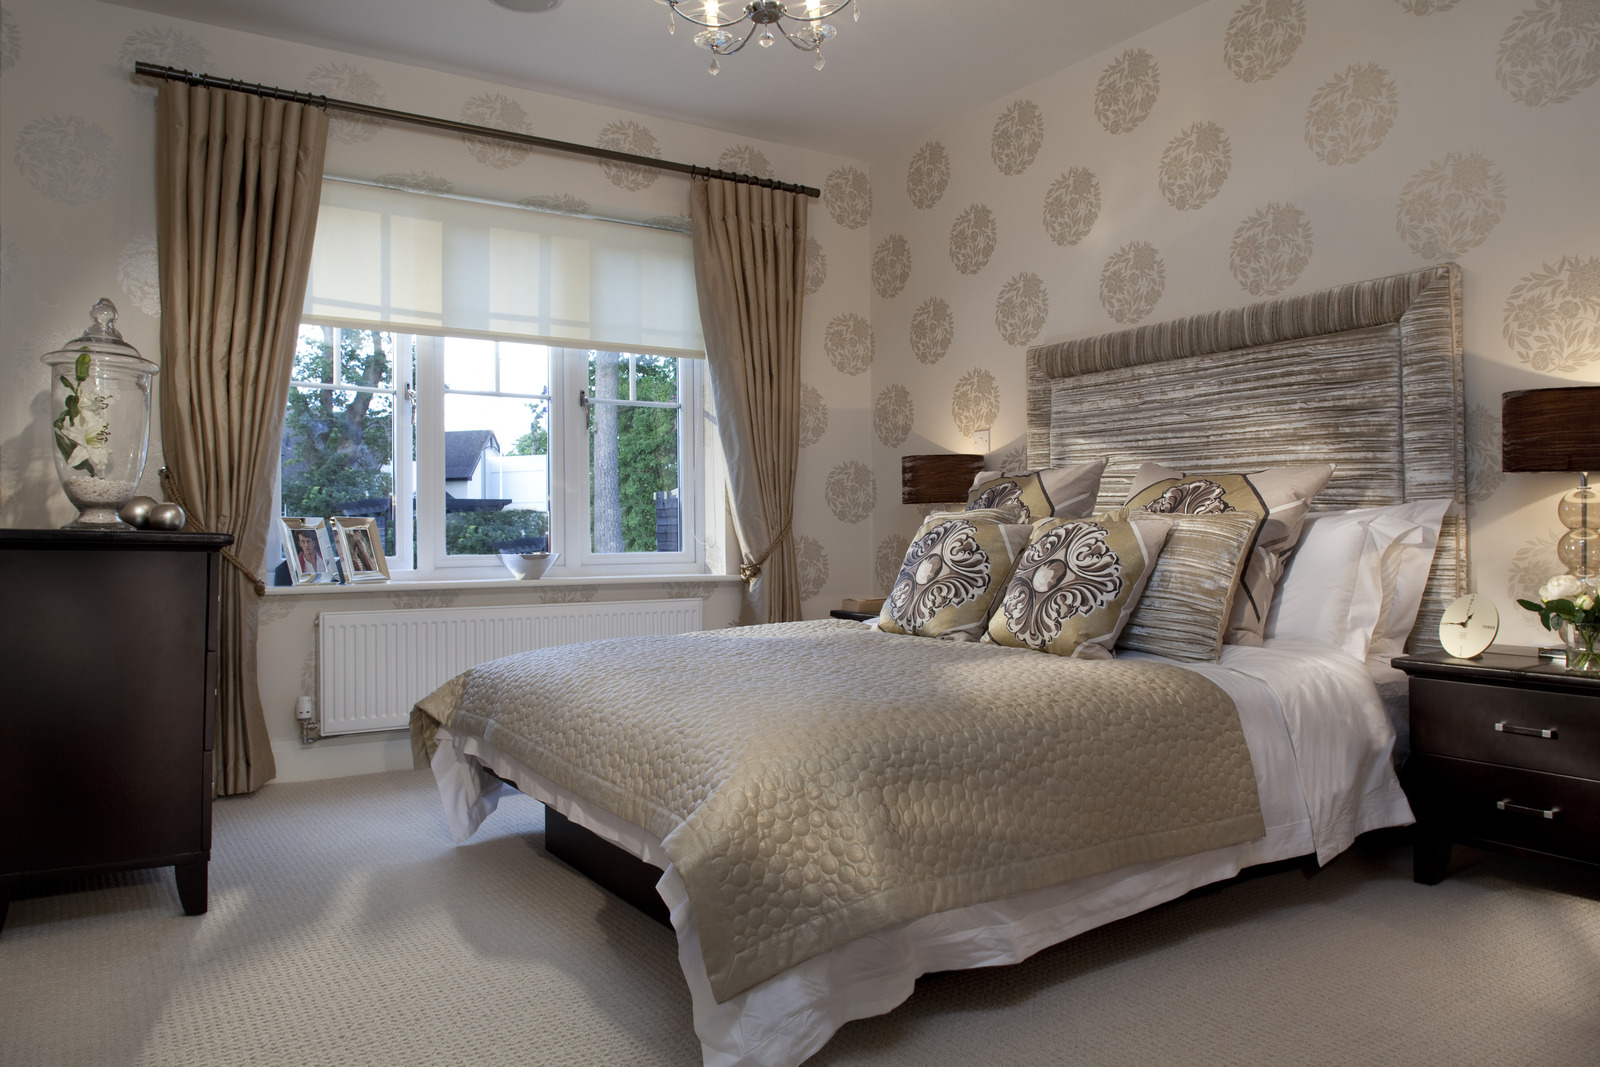 Stylish Apartment Bedroom Ideas for Comfort and Style ... on Comfortable Bedroom Ideas  id=82187